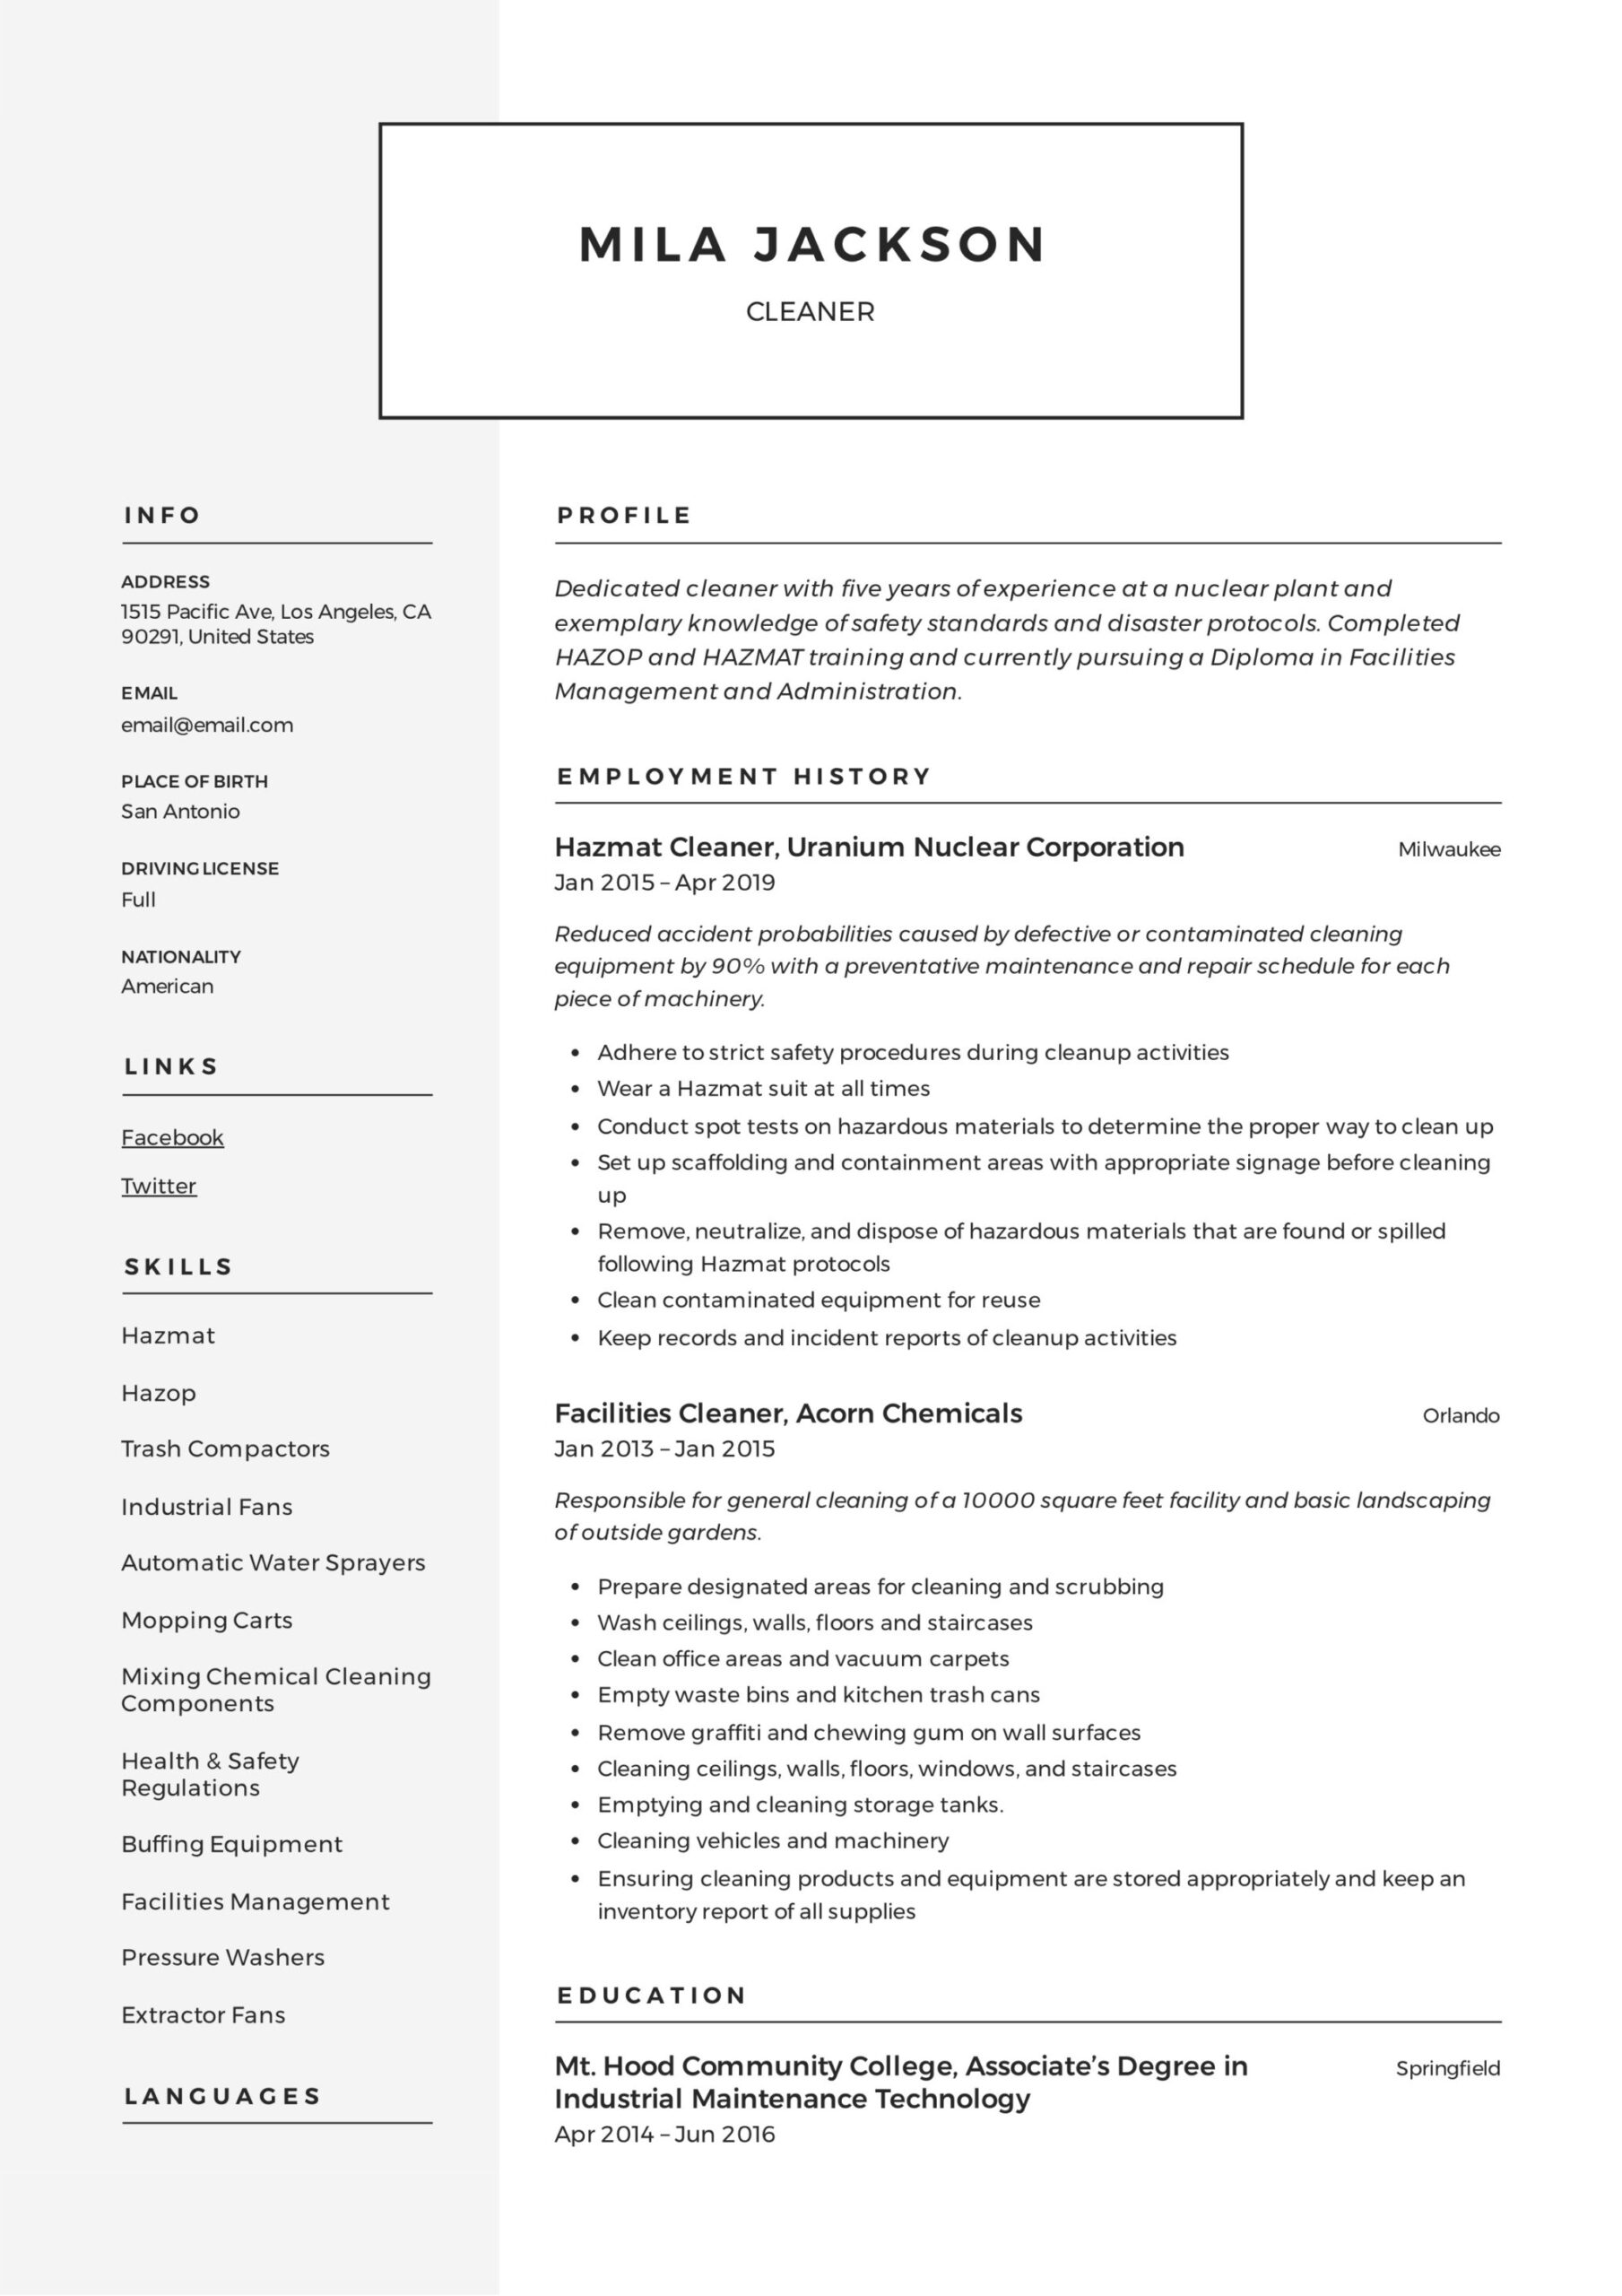 cleaner resume writing guide templates pdf for cleaning position mila high school student Resume Resume For Cleaning Position